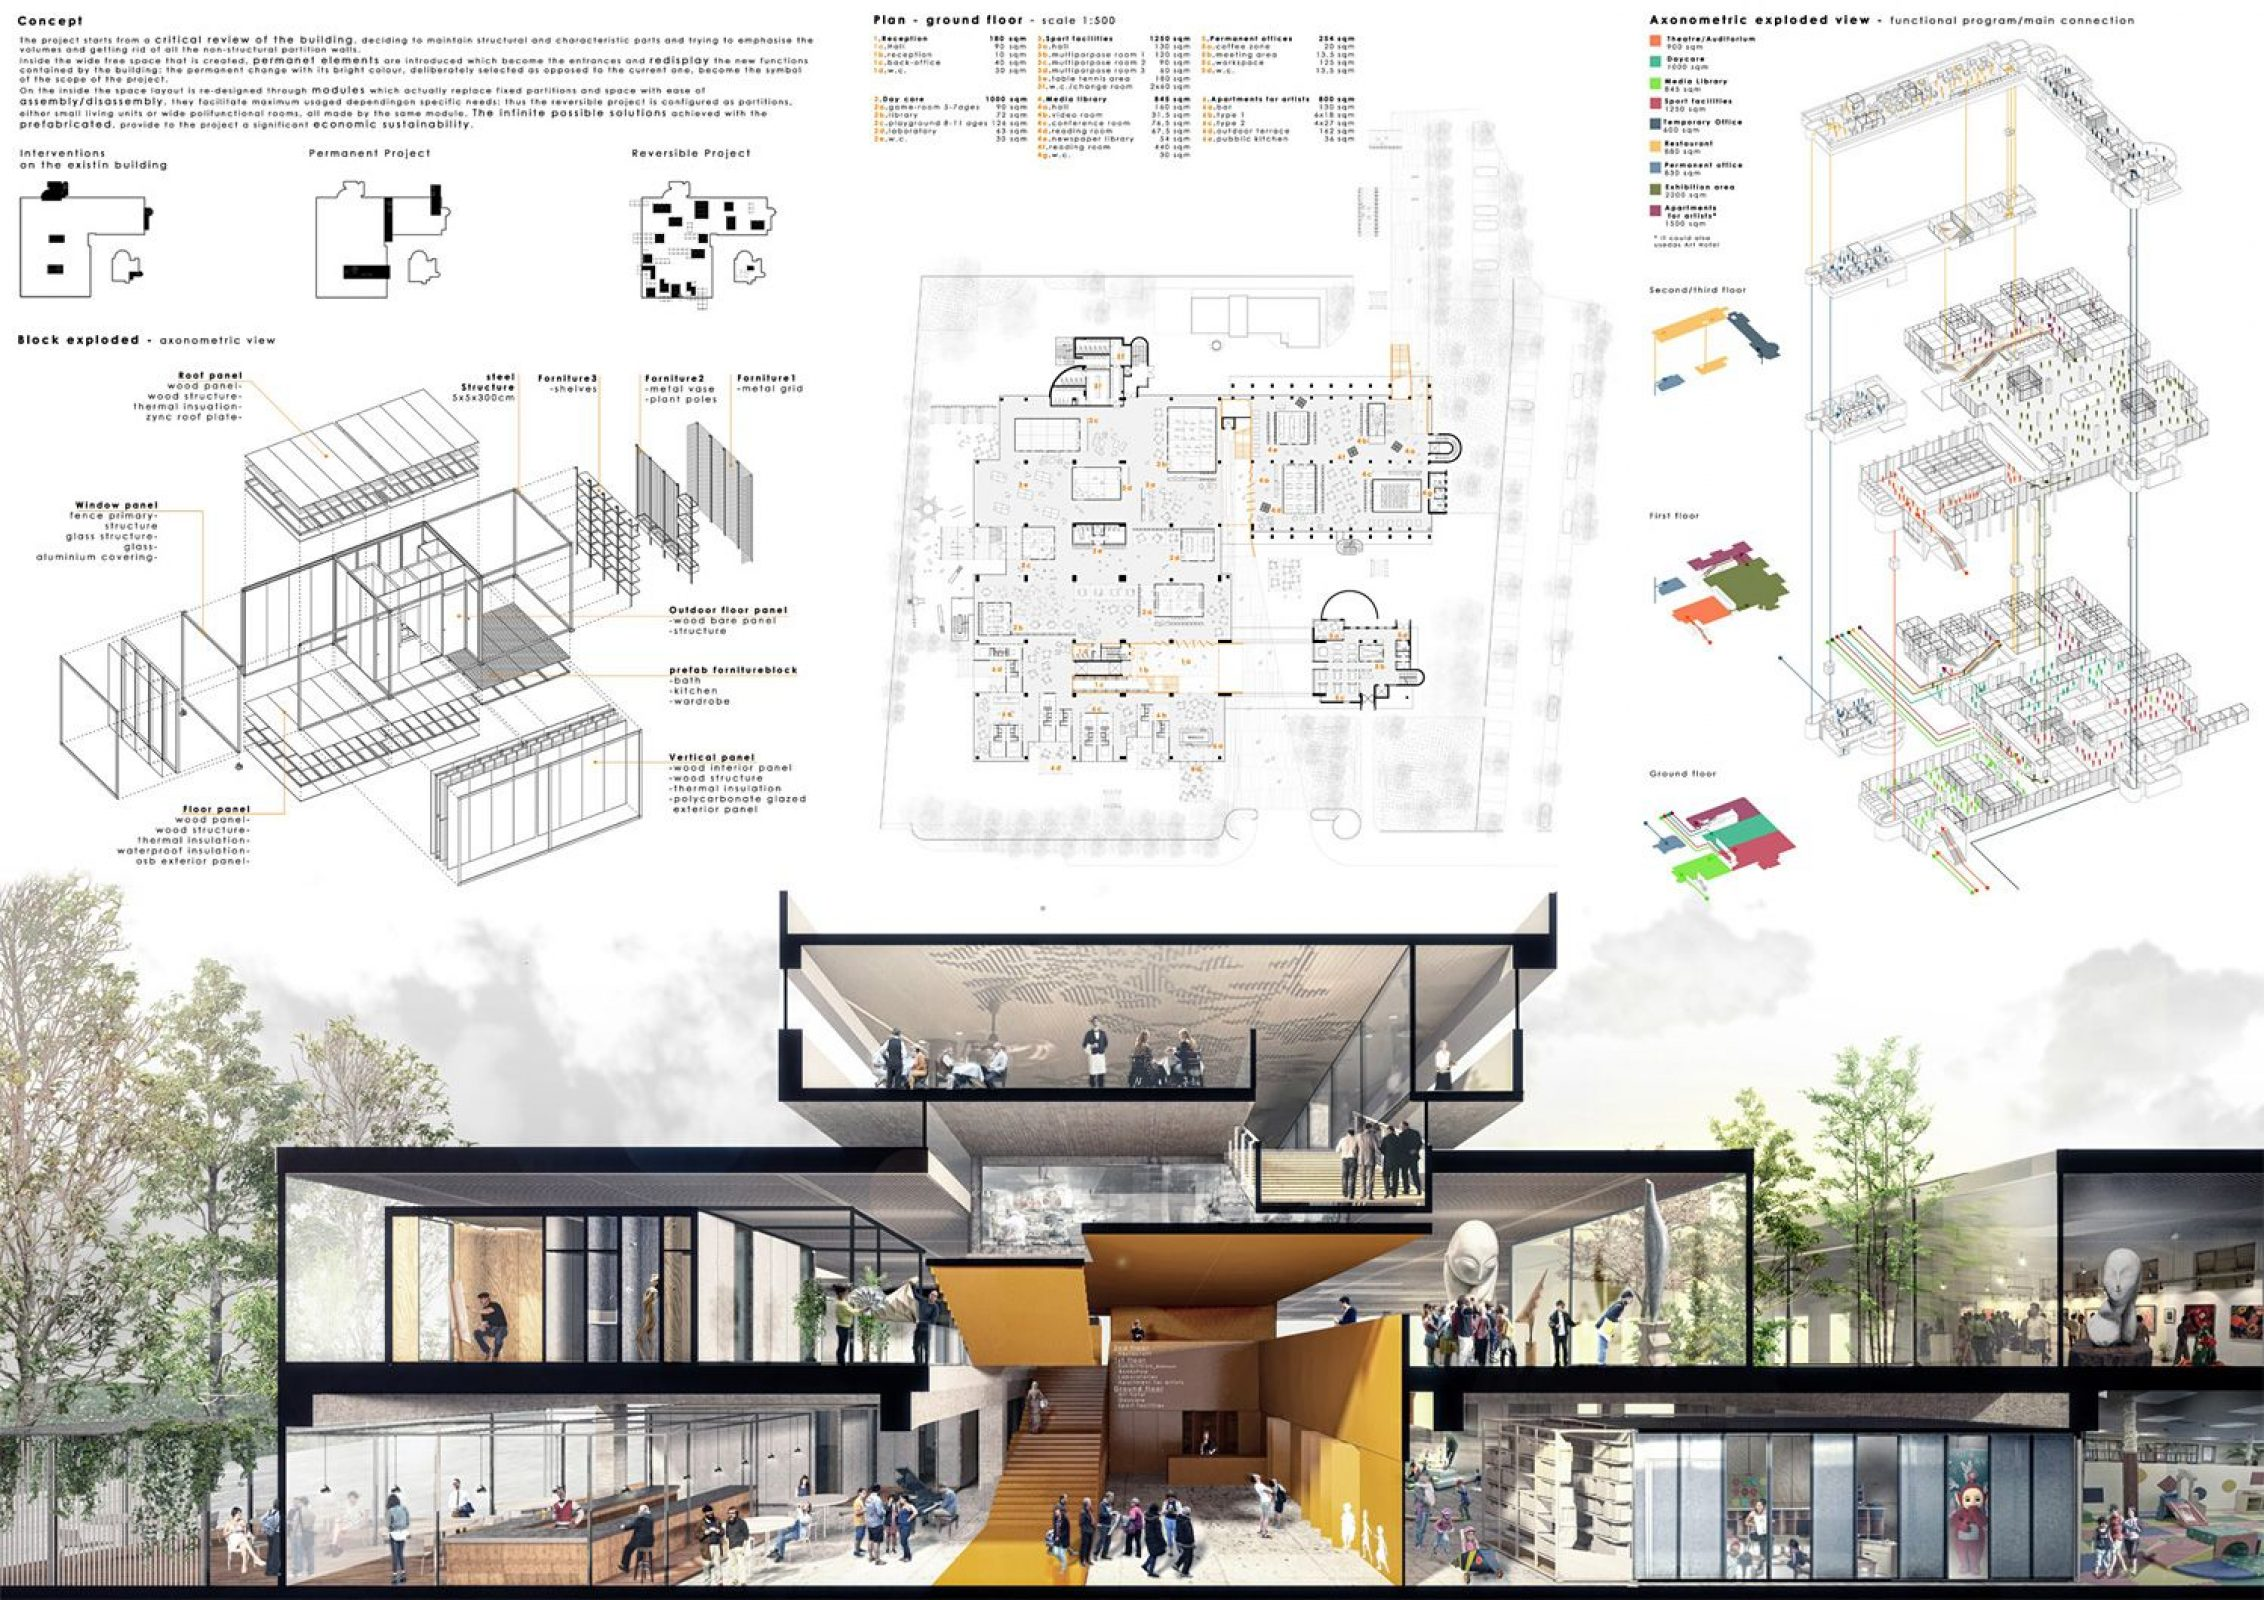 10 Tips For Creating Stunning Architecture Project Presentation Arch2o Com If you've ever sat through a bad presentation, you know that much of its effectiveness hinges on the look and feel of the deck. 10 tips for creating stunning